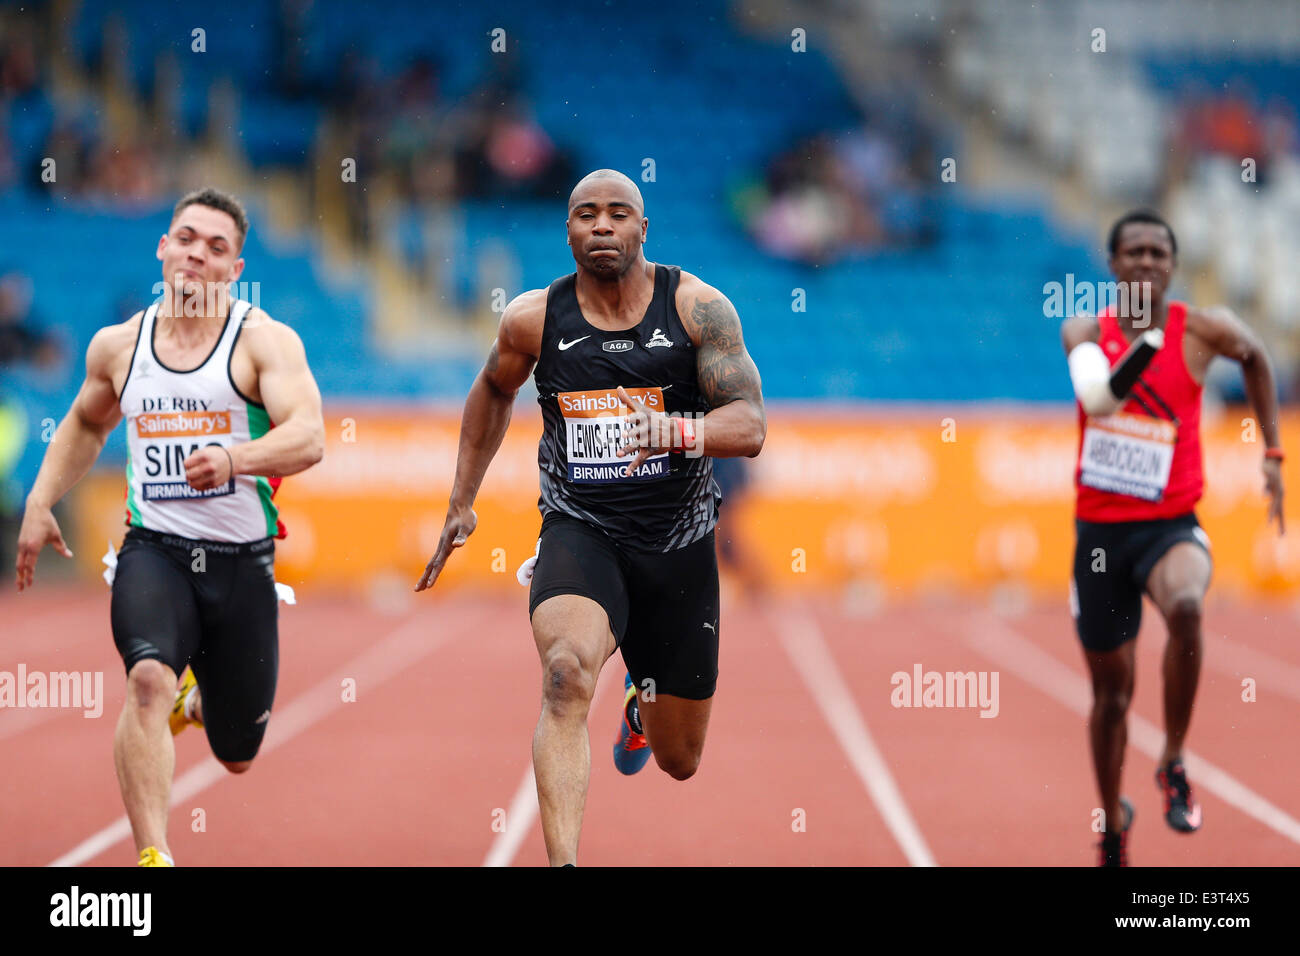 Birmingham, UK. 28th June, 2014. Mark LEWIS-FRANCIS (Birchfield) in action in the heats for the Men's 100m during - Stock Image